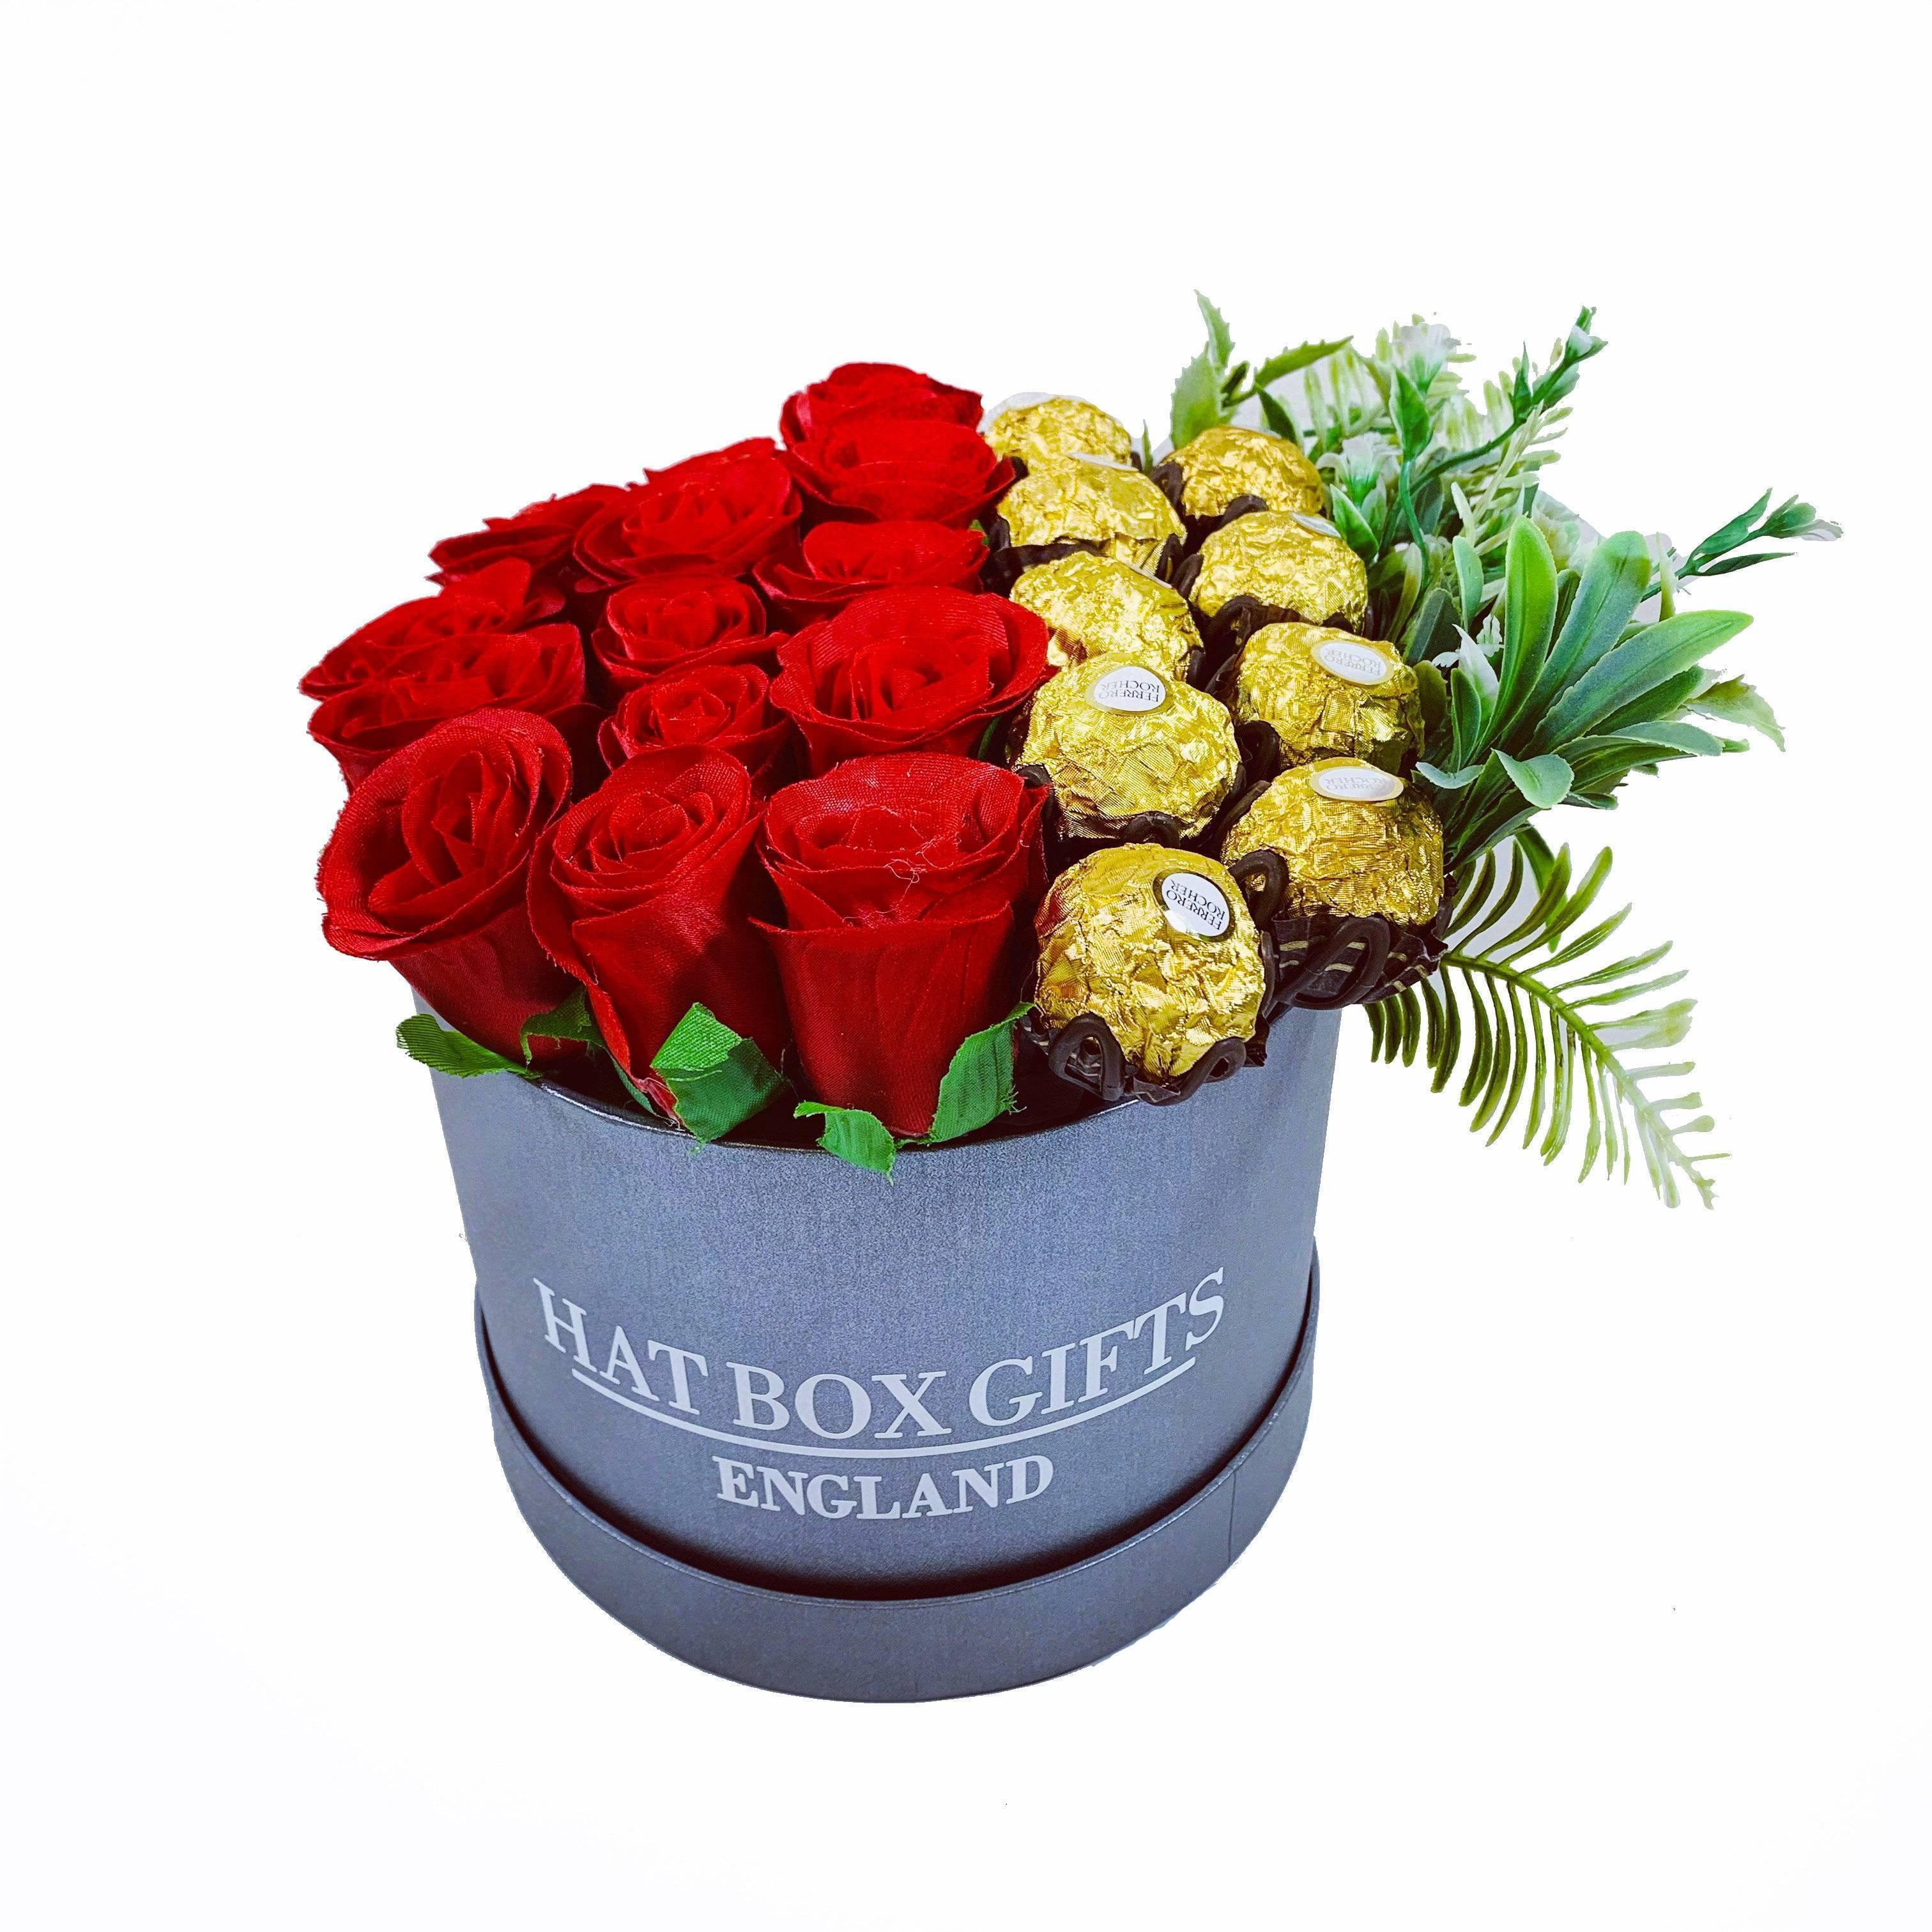 Hat Box with Display of Chocolates & Red Roses